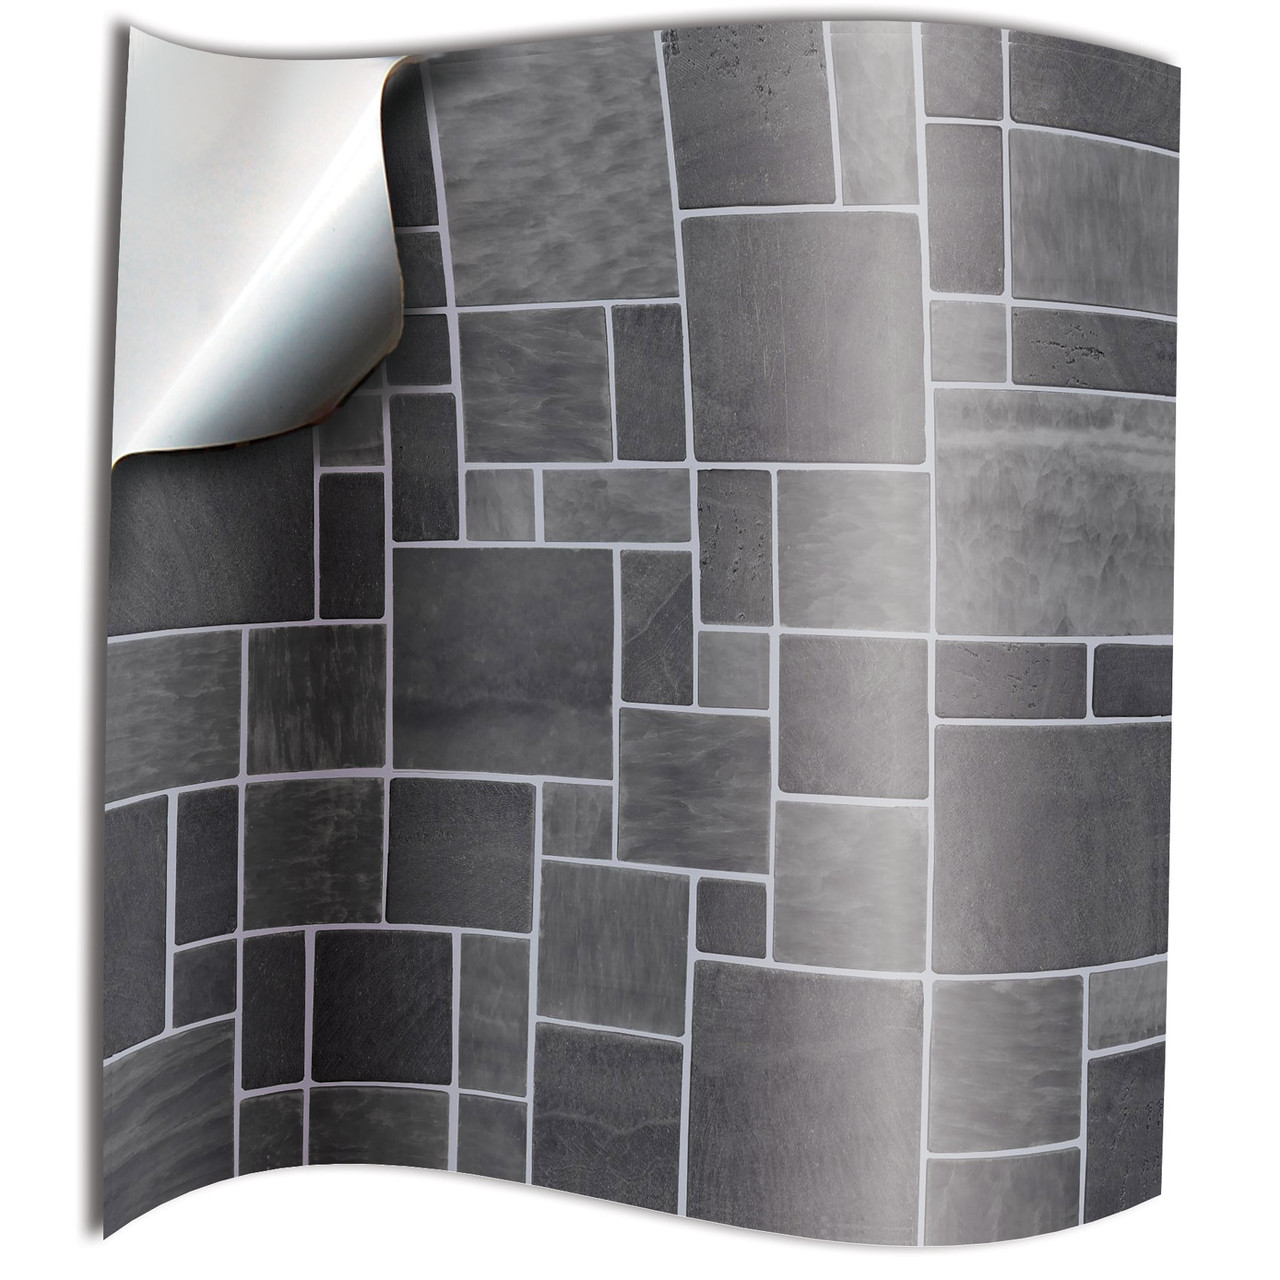 24 Printed In 2d Kitchen Bathroom Tile Stickers For 6 Inches 15 Cm Square Tiles Tp31 Dark Grey Direct Supply No Middleman